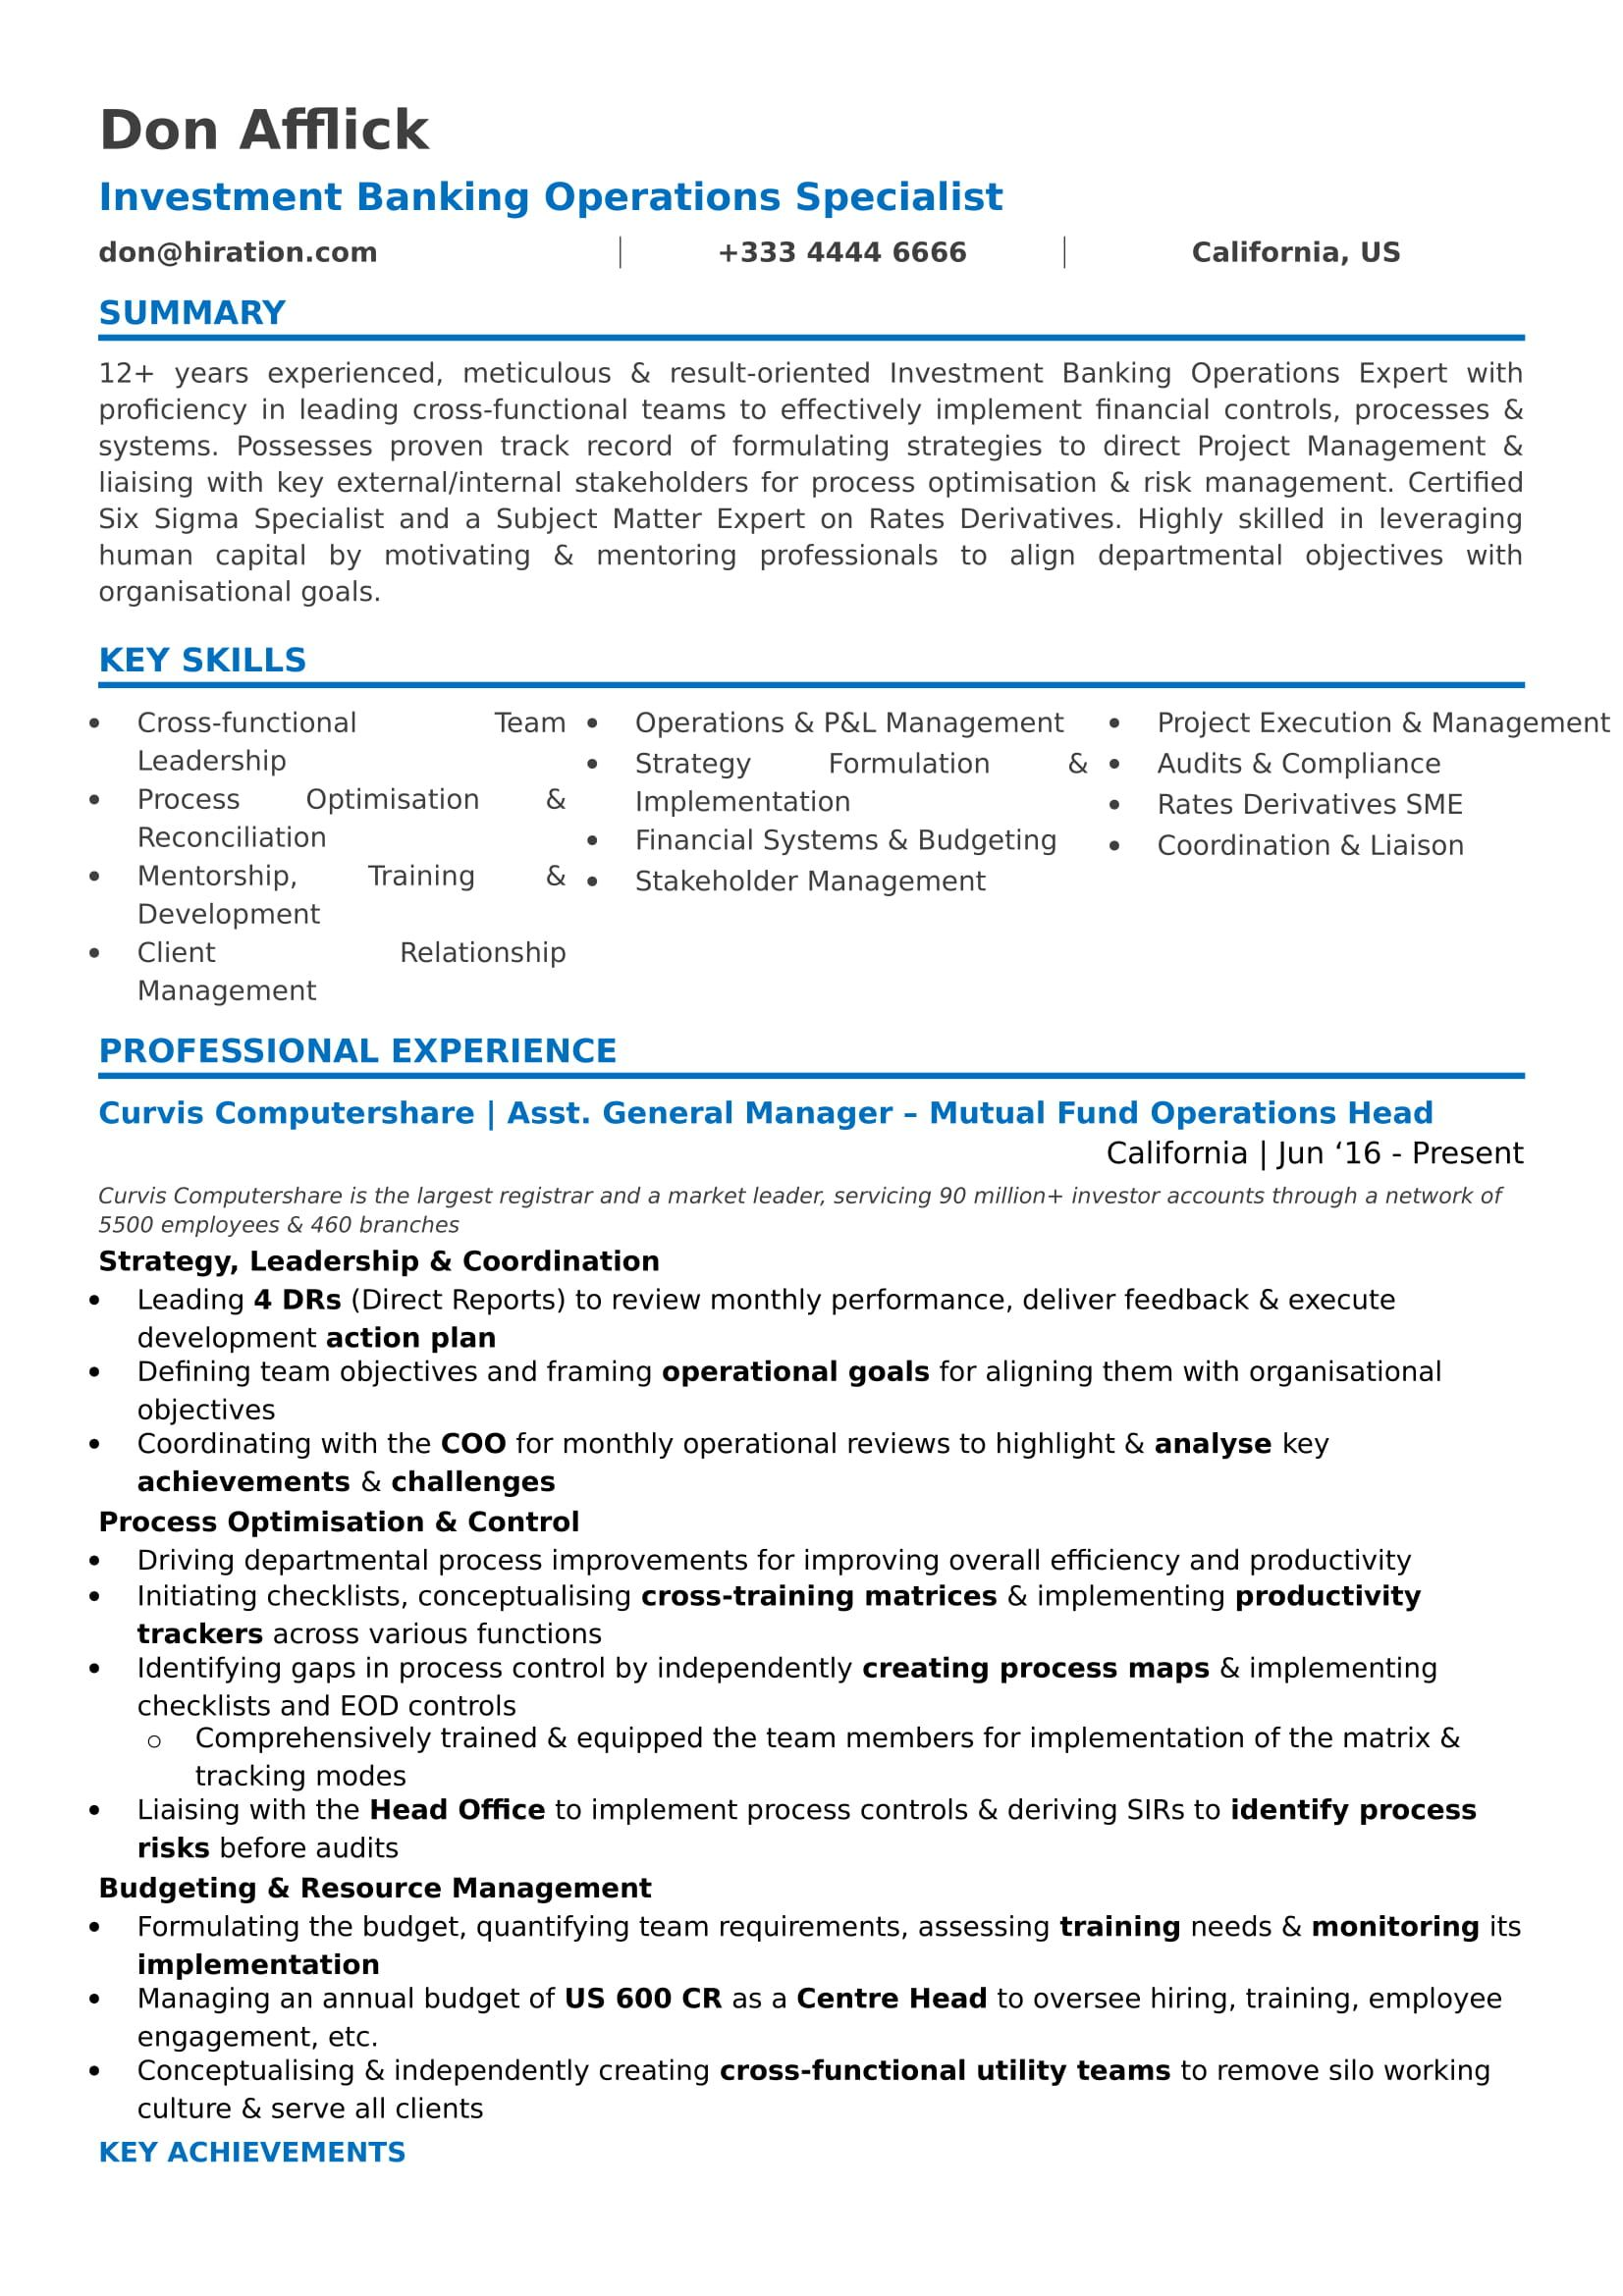 career change resume guide to for templates hiration rohit mahagaonkar cv production Resume Career Change Resume Templates